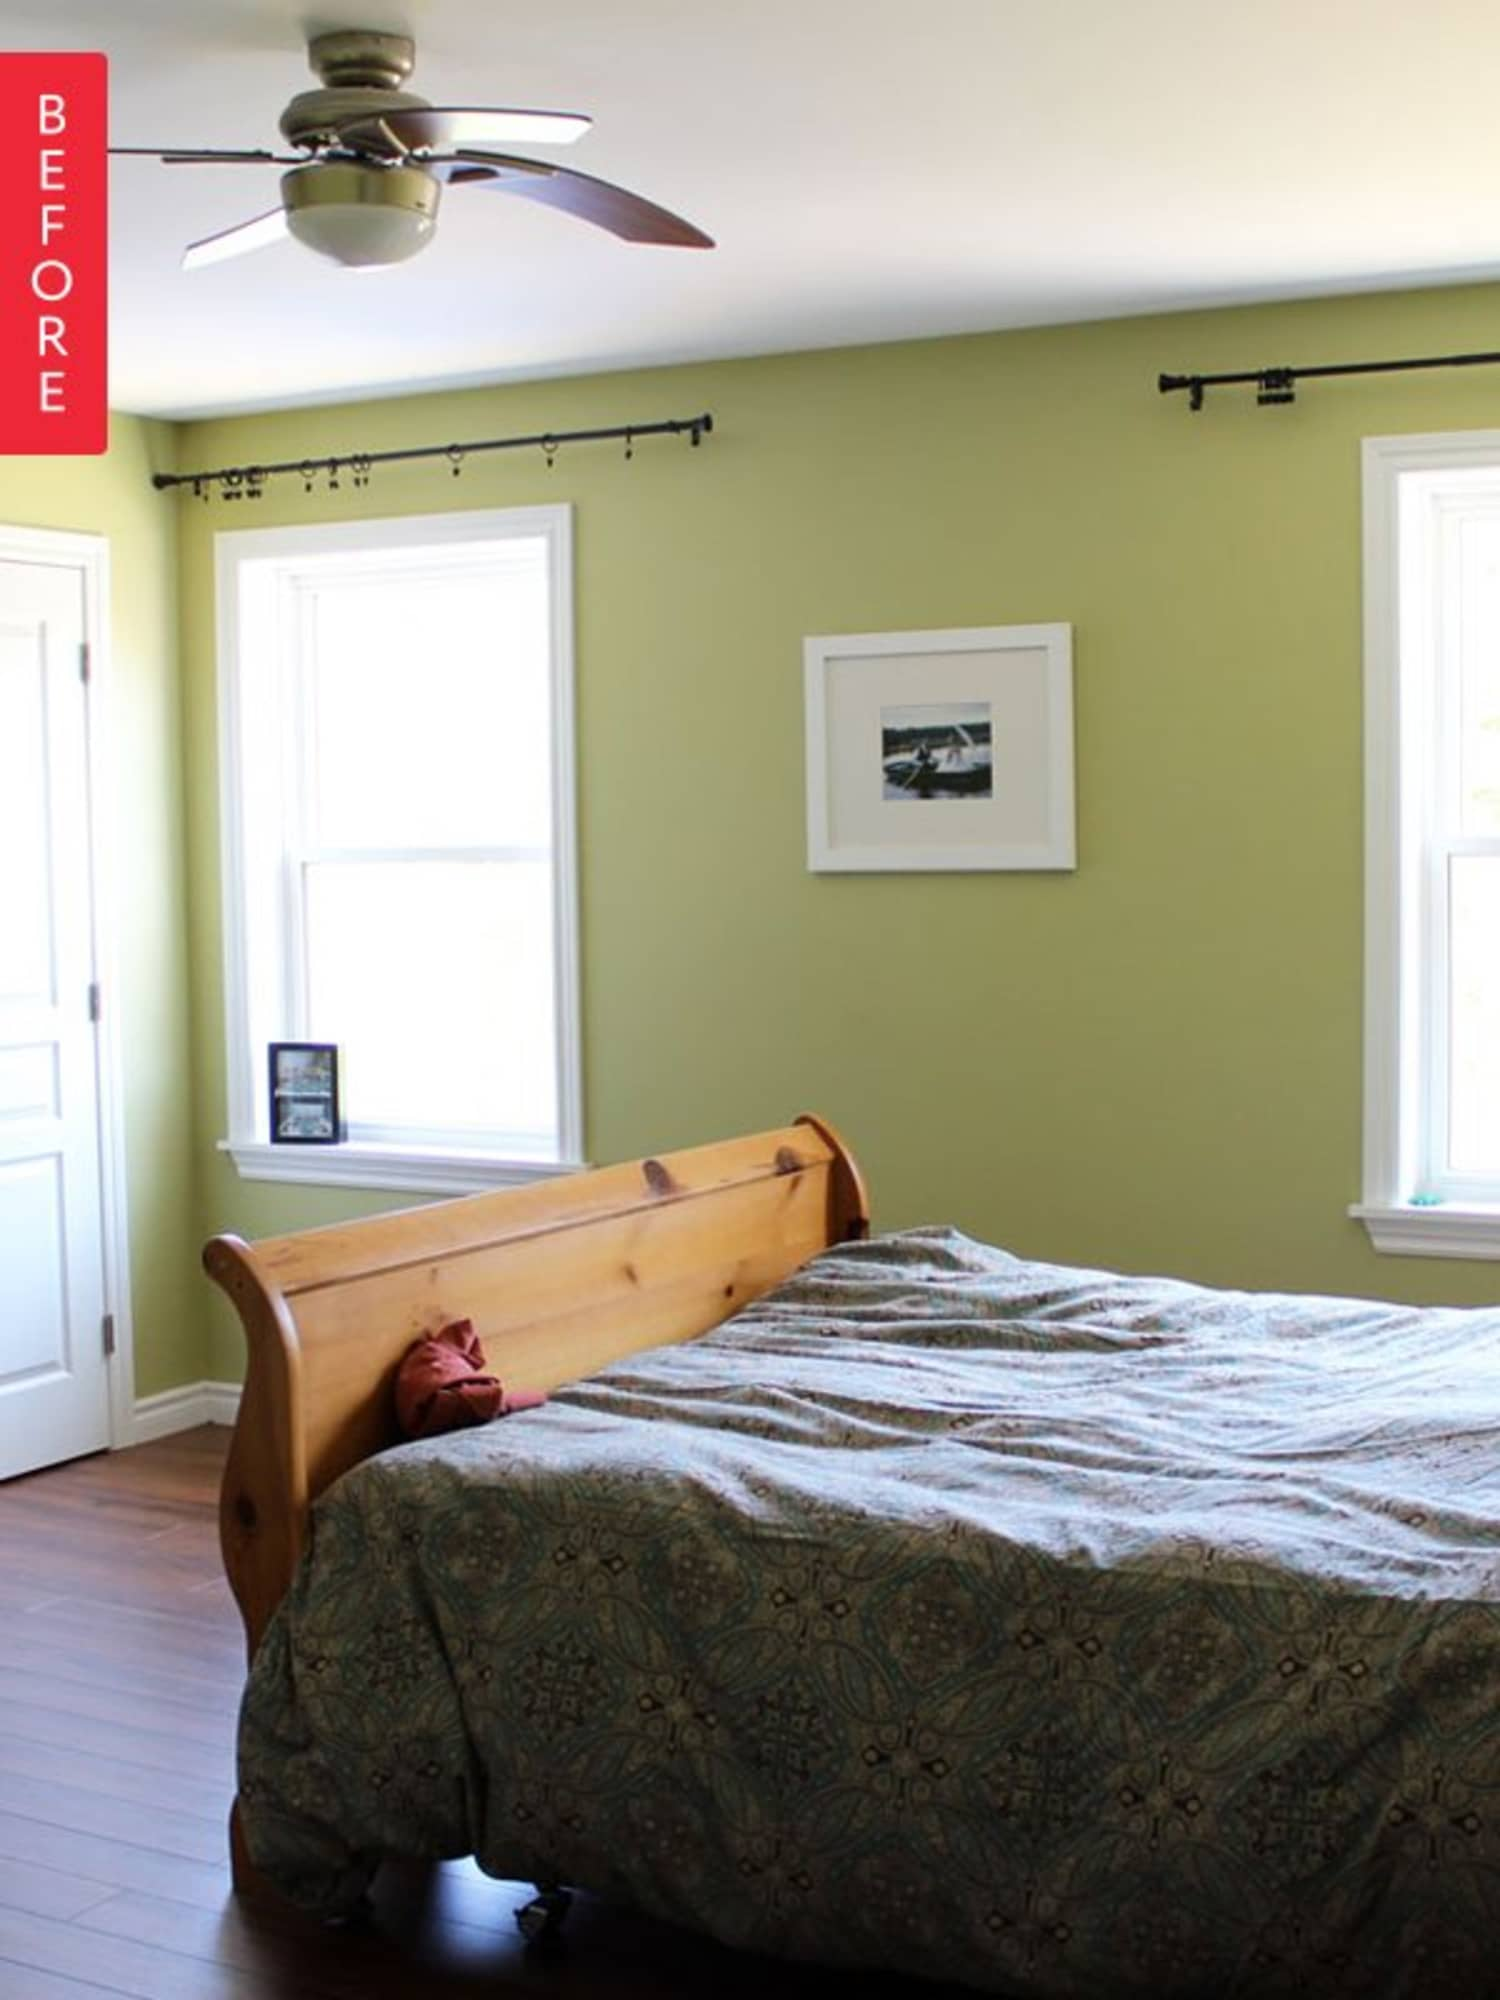 Before & After: A Refreshed Bedroom Retreat